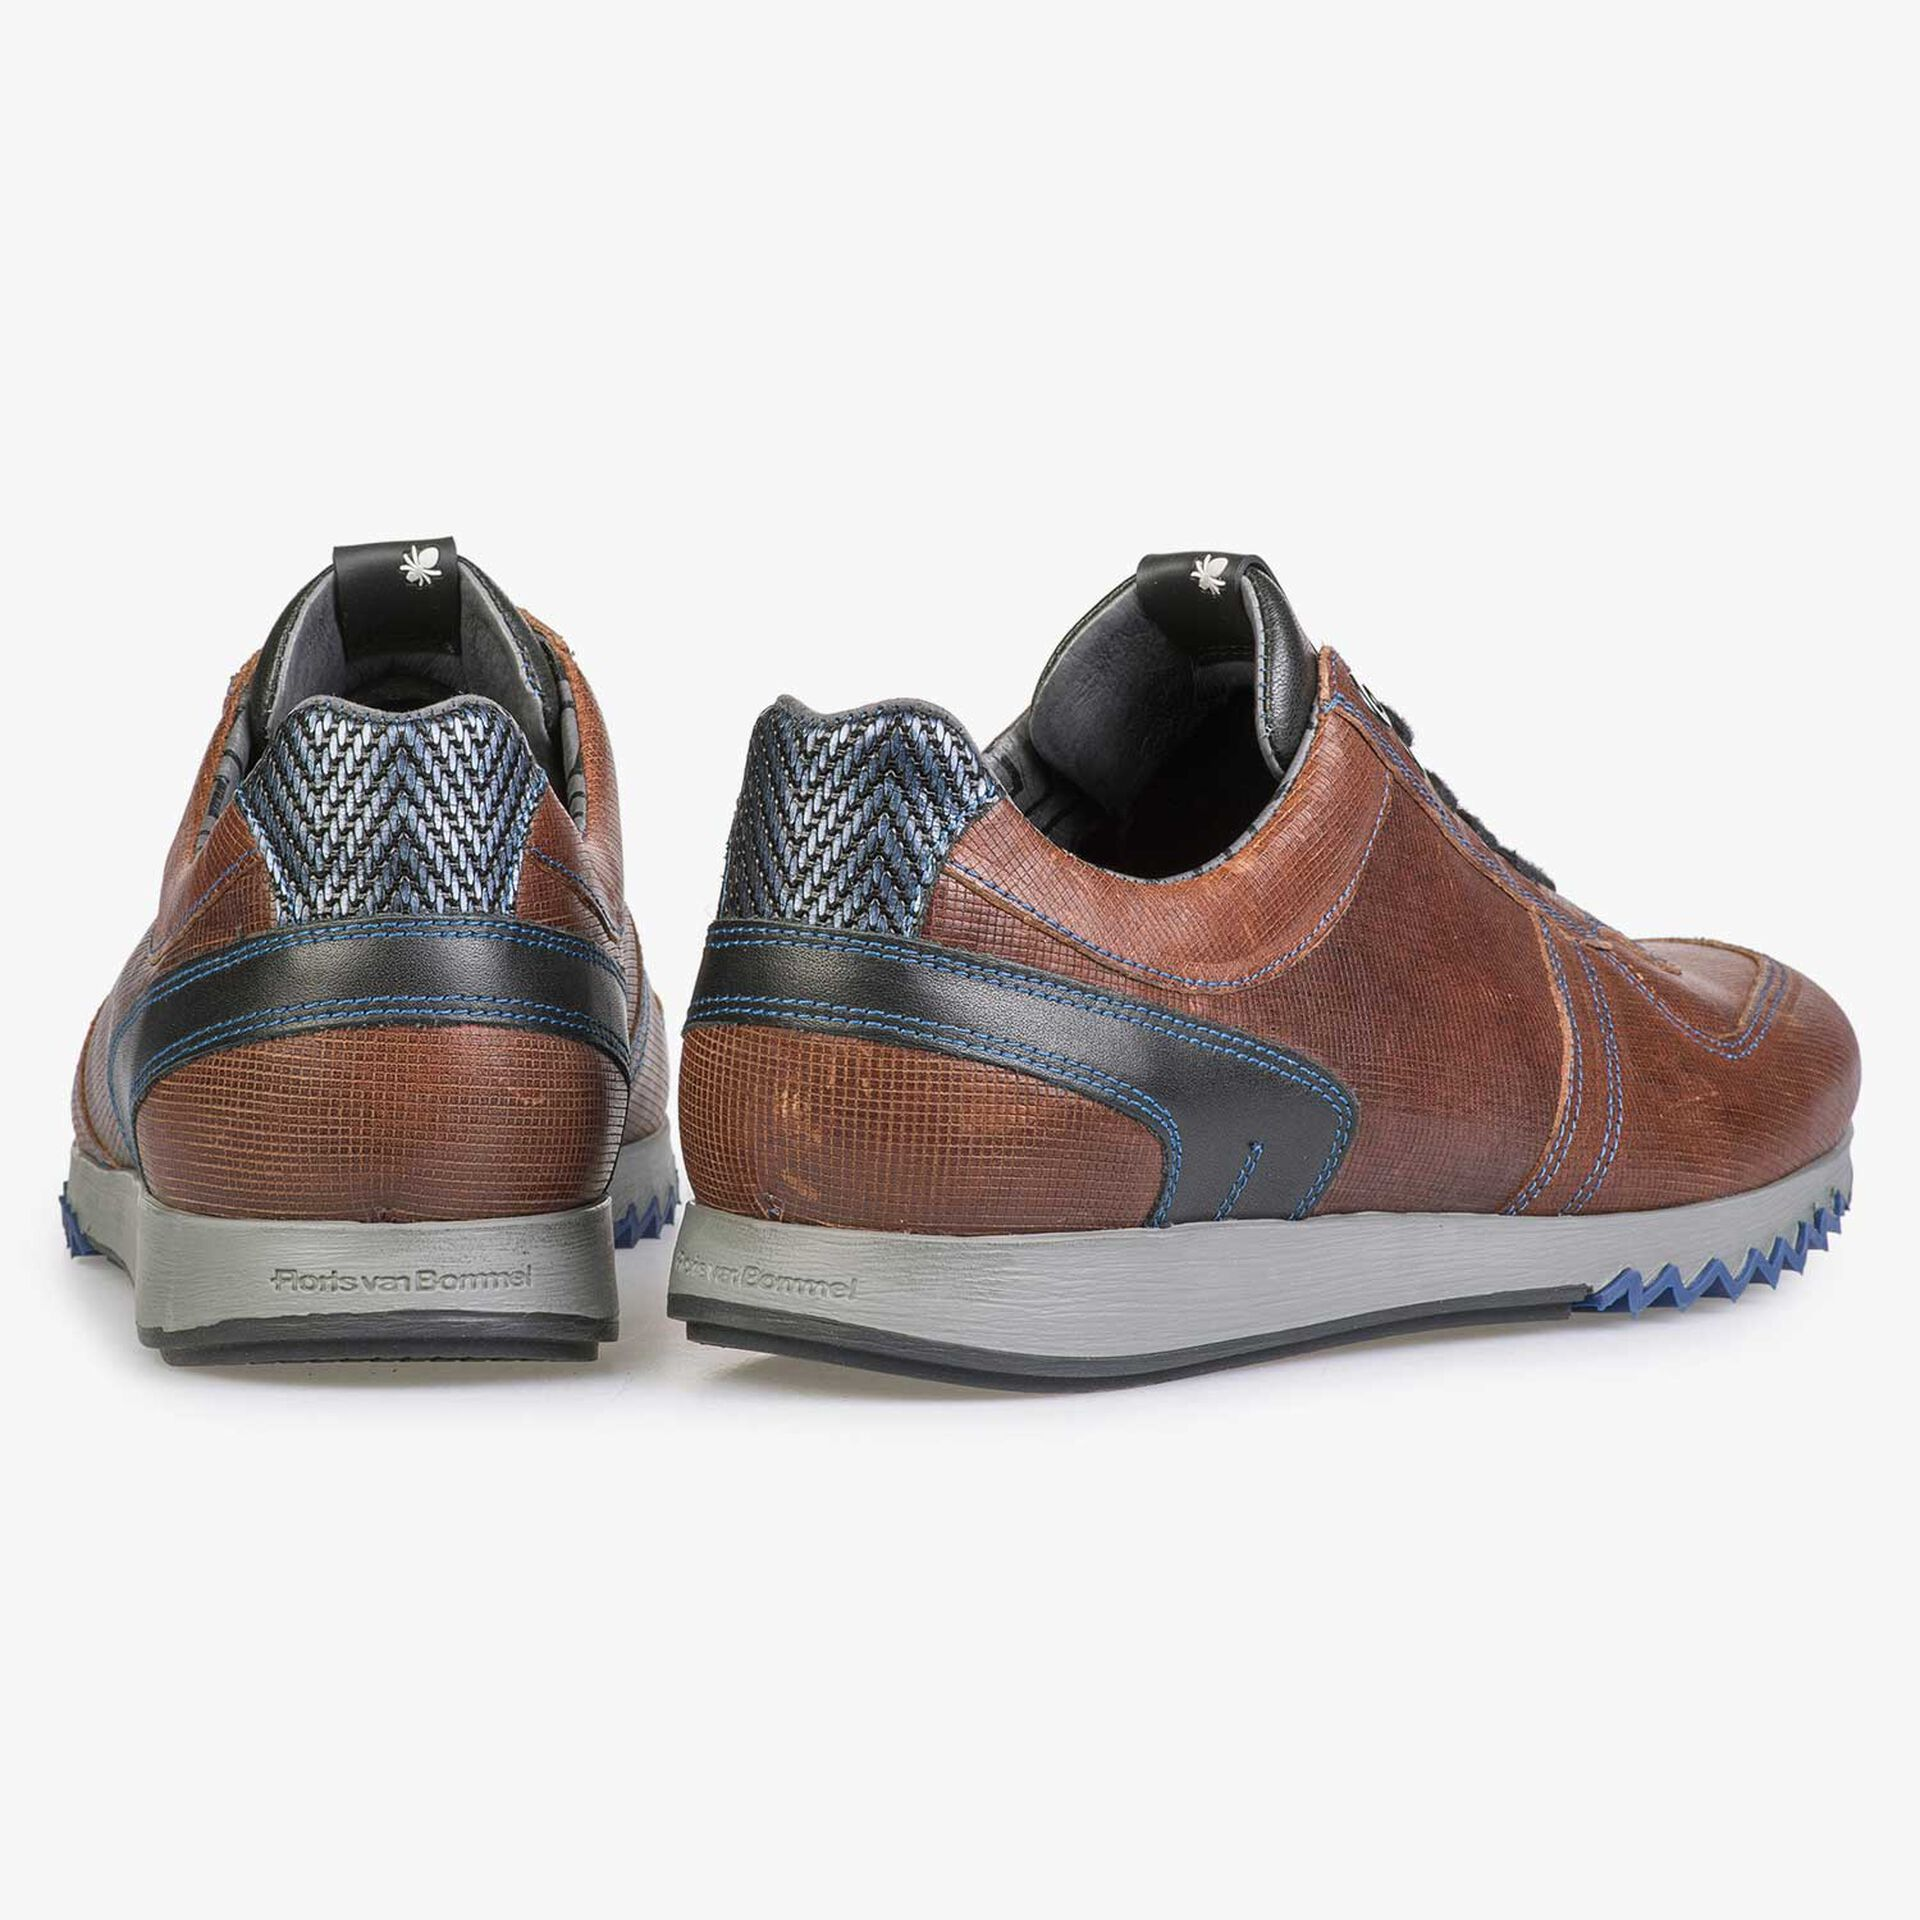 Brown sneaker with cobalt blue stitching